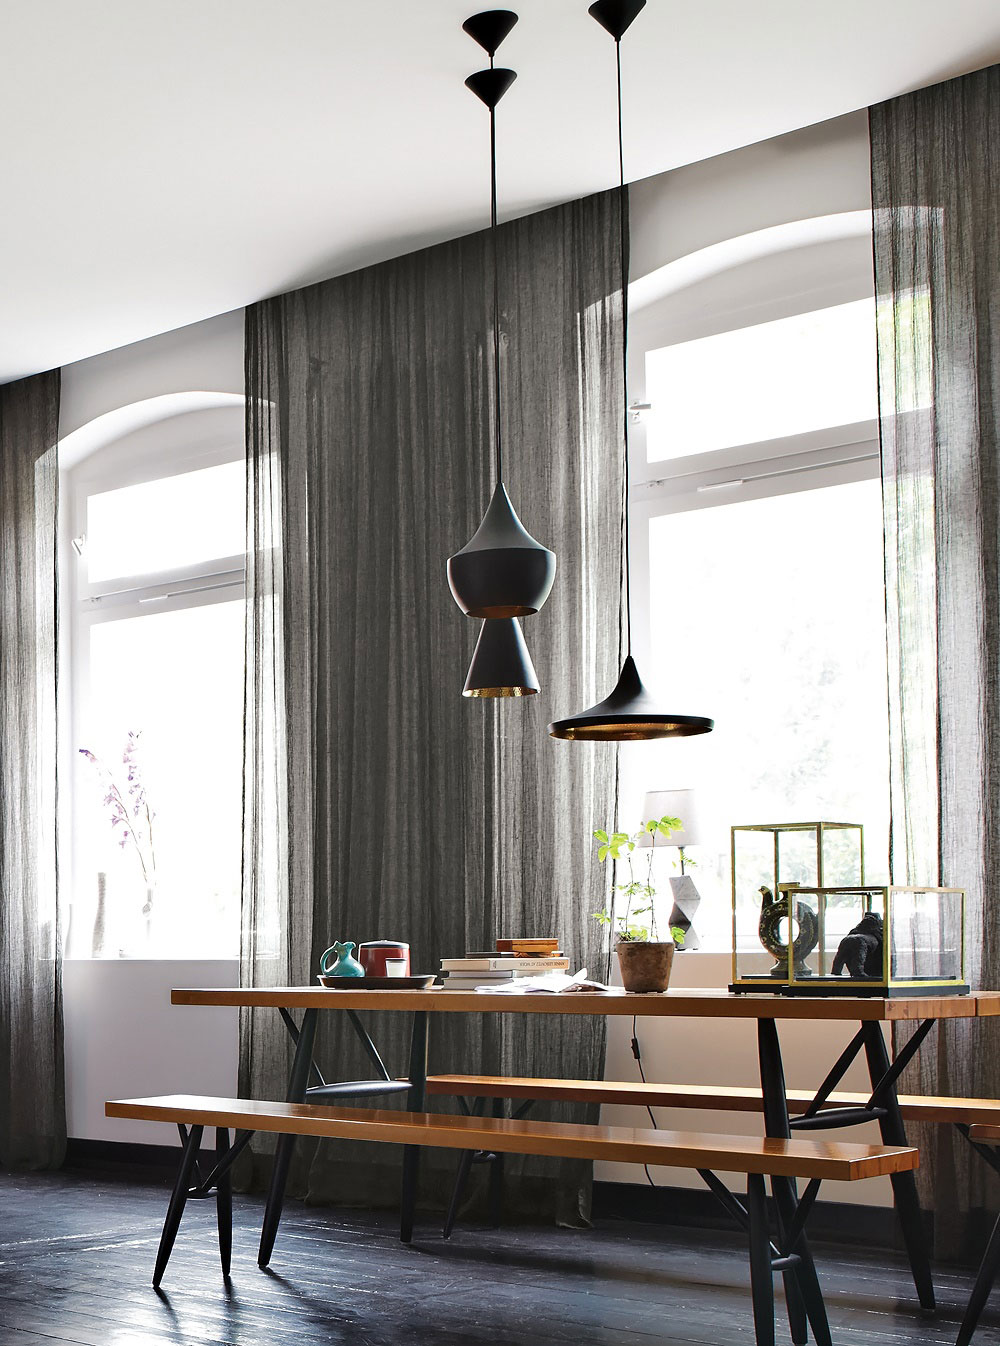 Bench Dining Table, Lighting, Apartment Renovation in Berlin, Germany